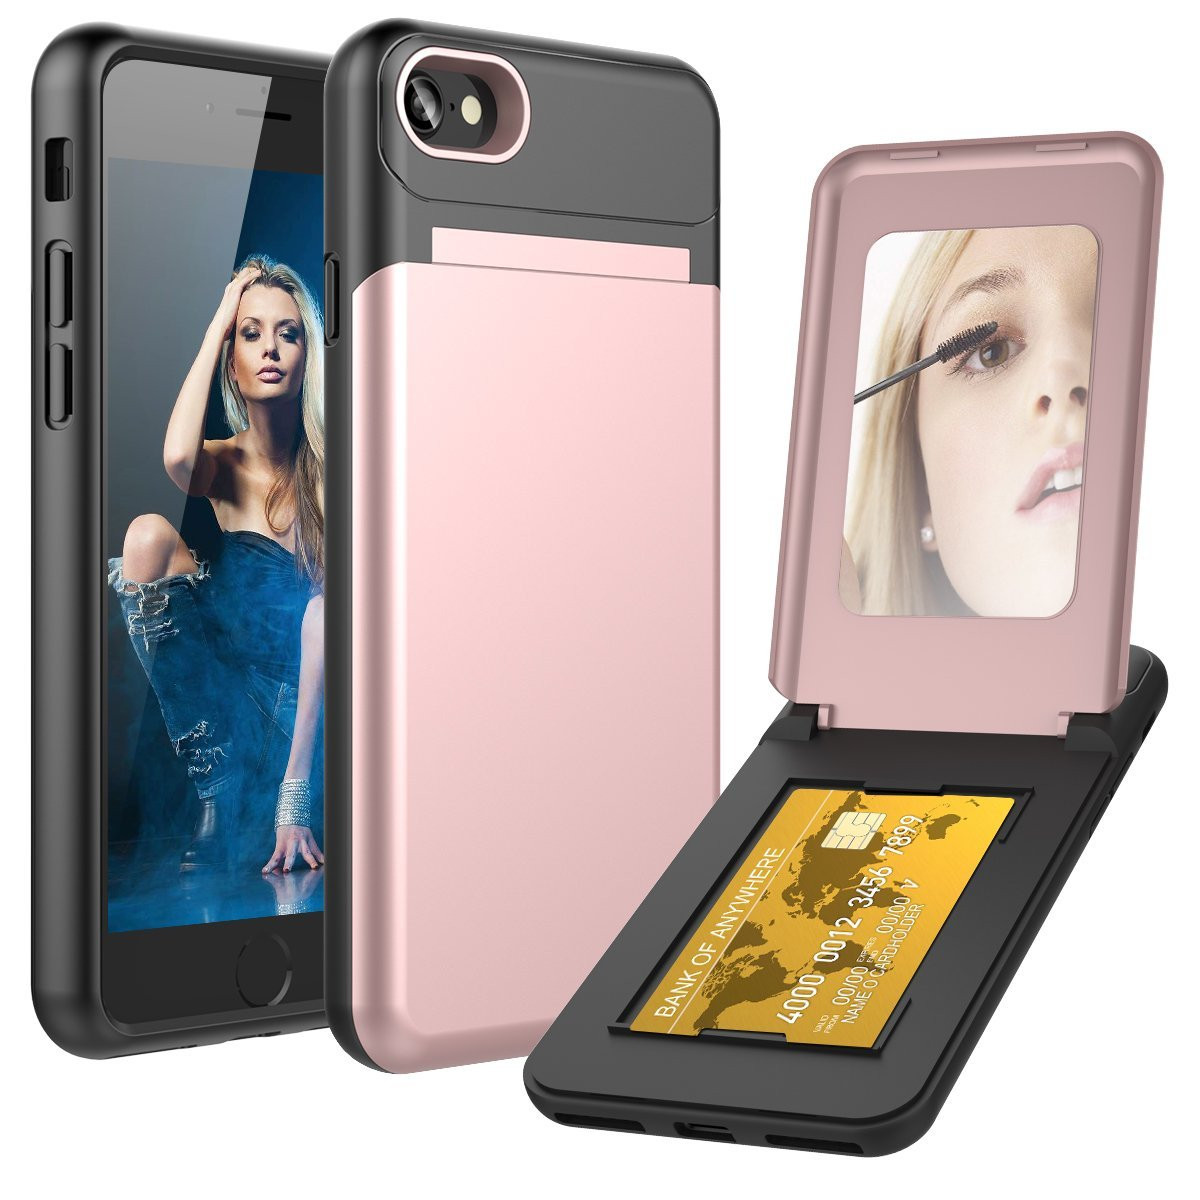 Apple iPhone 7 -  Hard Phone Case with Hidden Mirror and Card Holder Compartment, Rose Gold/Black